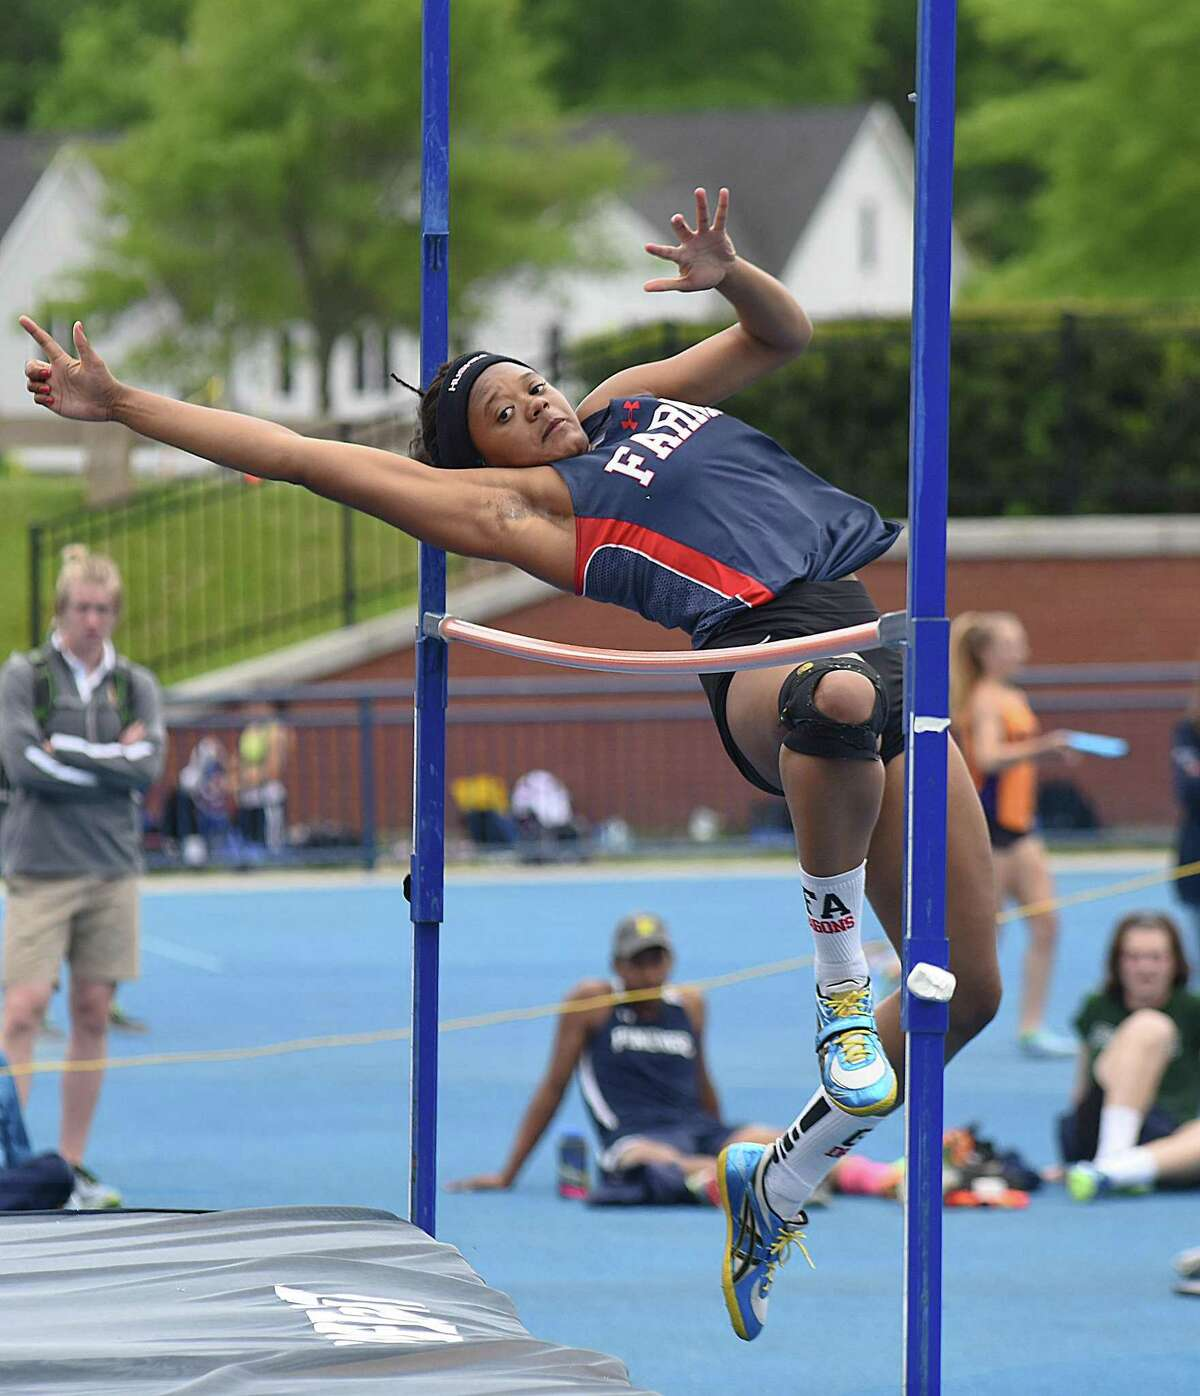 Greens Farms Academy senior high jumper Olivia Sullivan, a resident of Norwalk, clears the bar at 5-foot-2 to win the NEPSAC Division 3 championship in that event at Cheshire Academy on Saturday.Sullivan also placed second in the triple jump and third in the long jump.